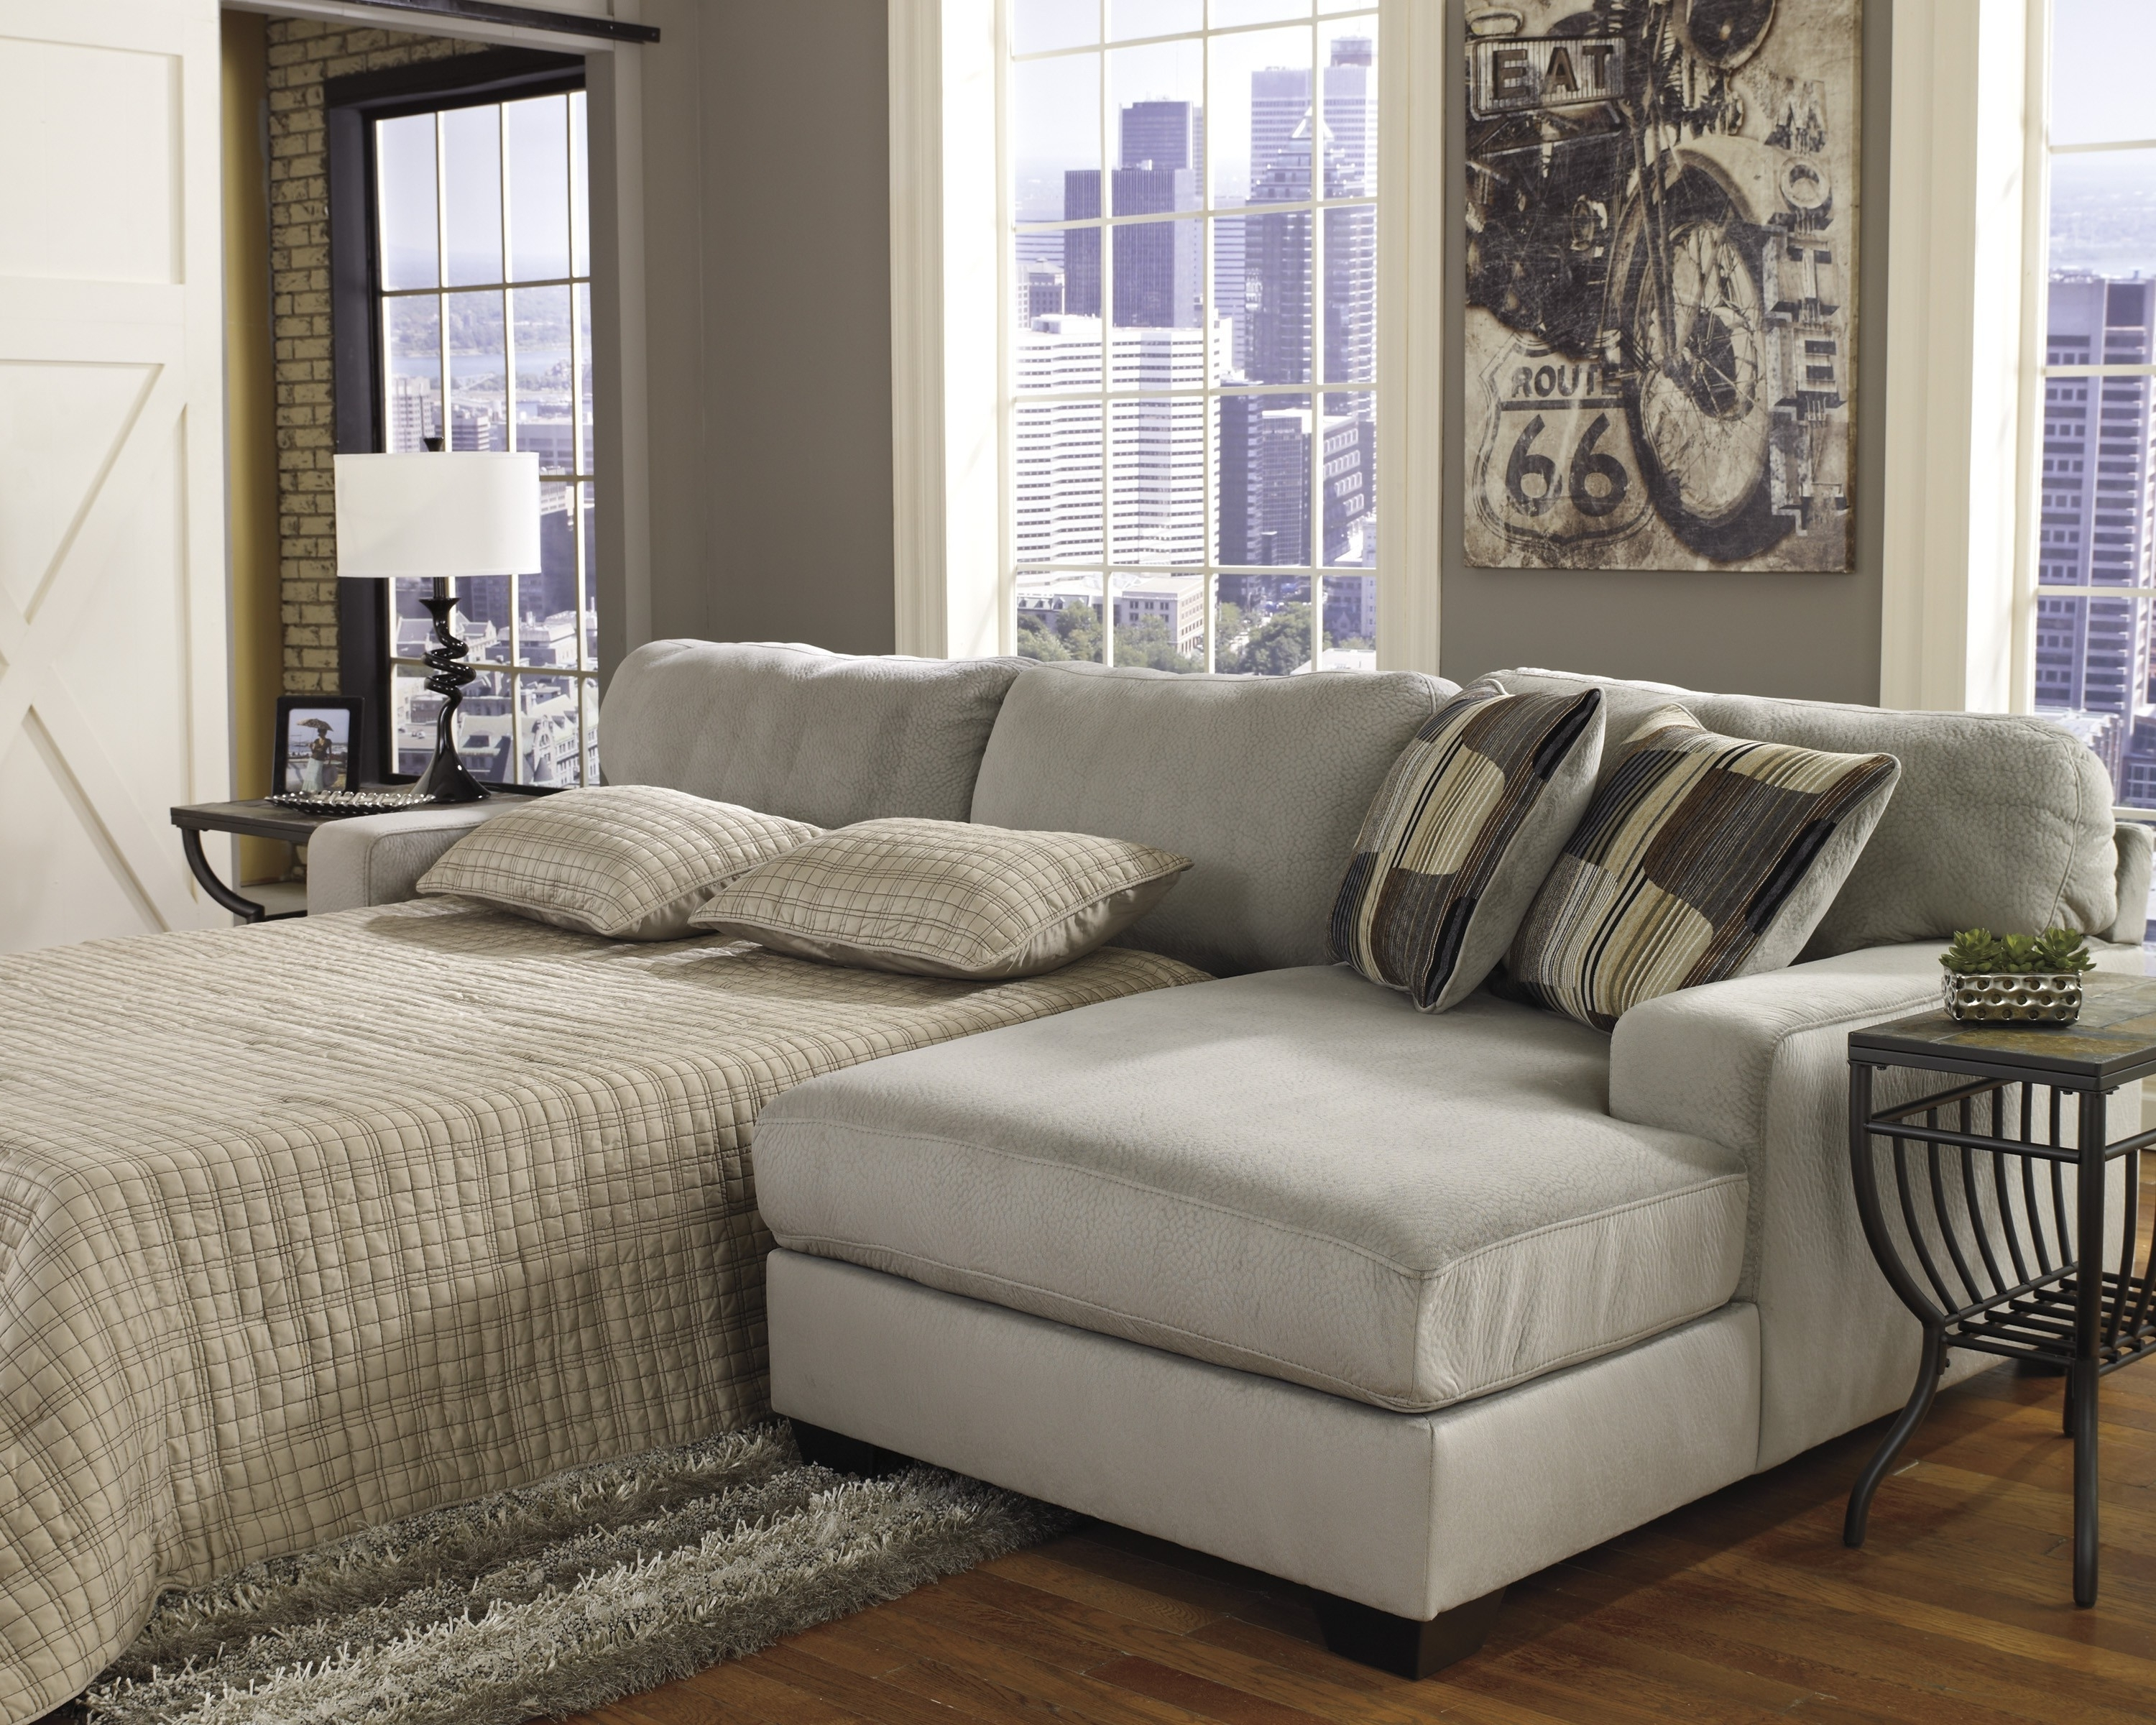 Recent Sofa : Elegant Oversized Sectional Sofa Picture Oversized Throughout Canada Sale Sectional Sofas (View 15 of 20)